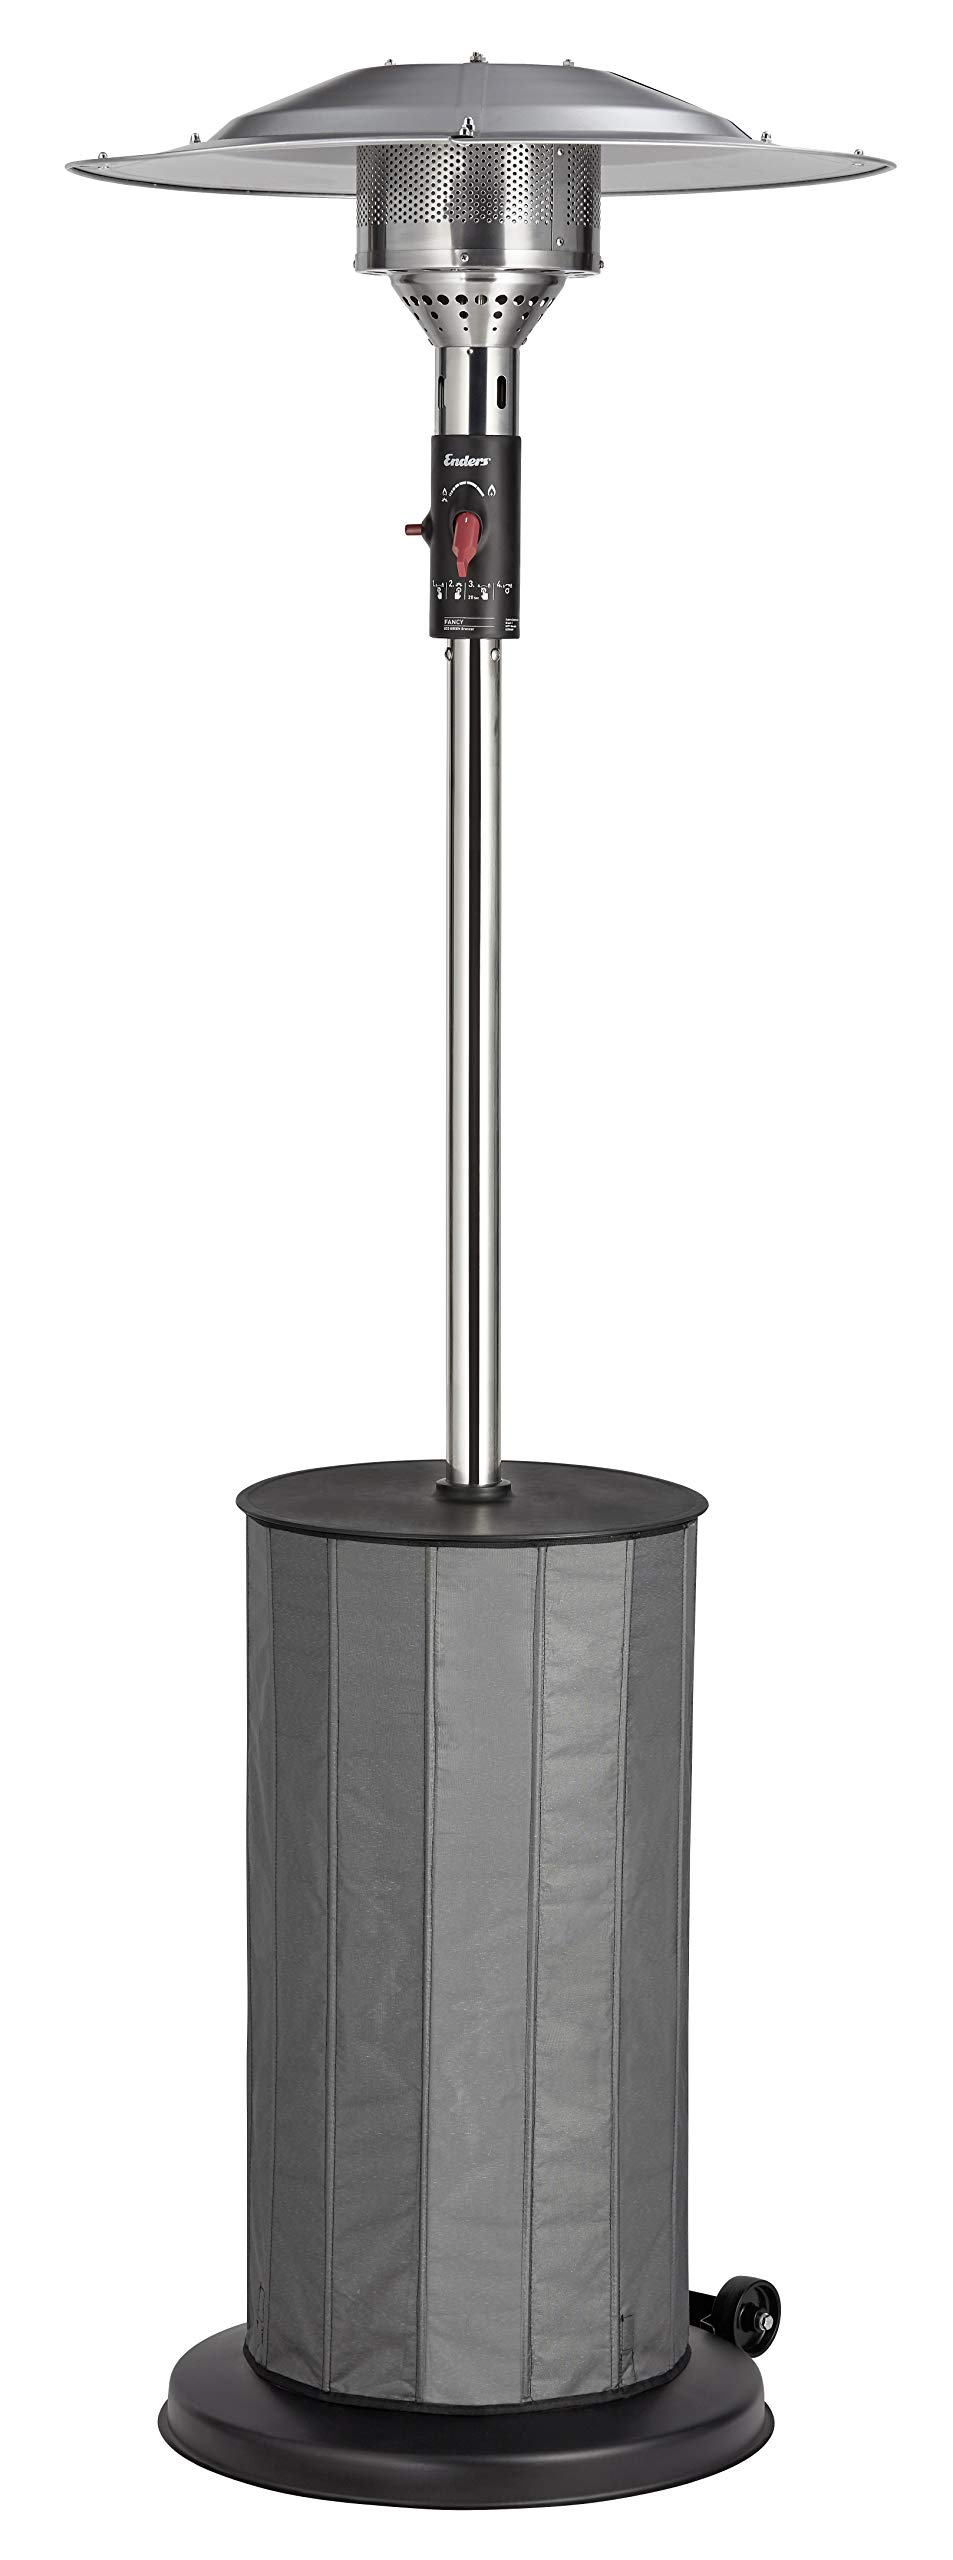 Enders Fancy Gas Patio Heater, Silver